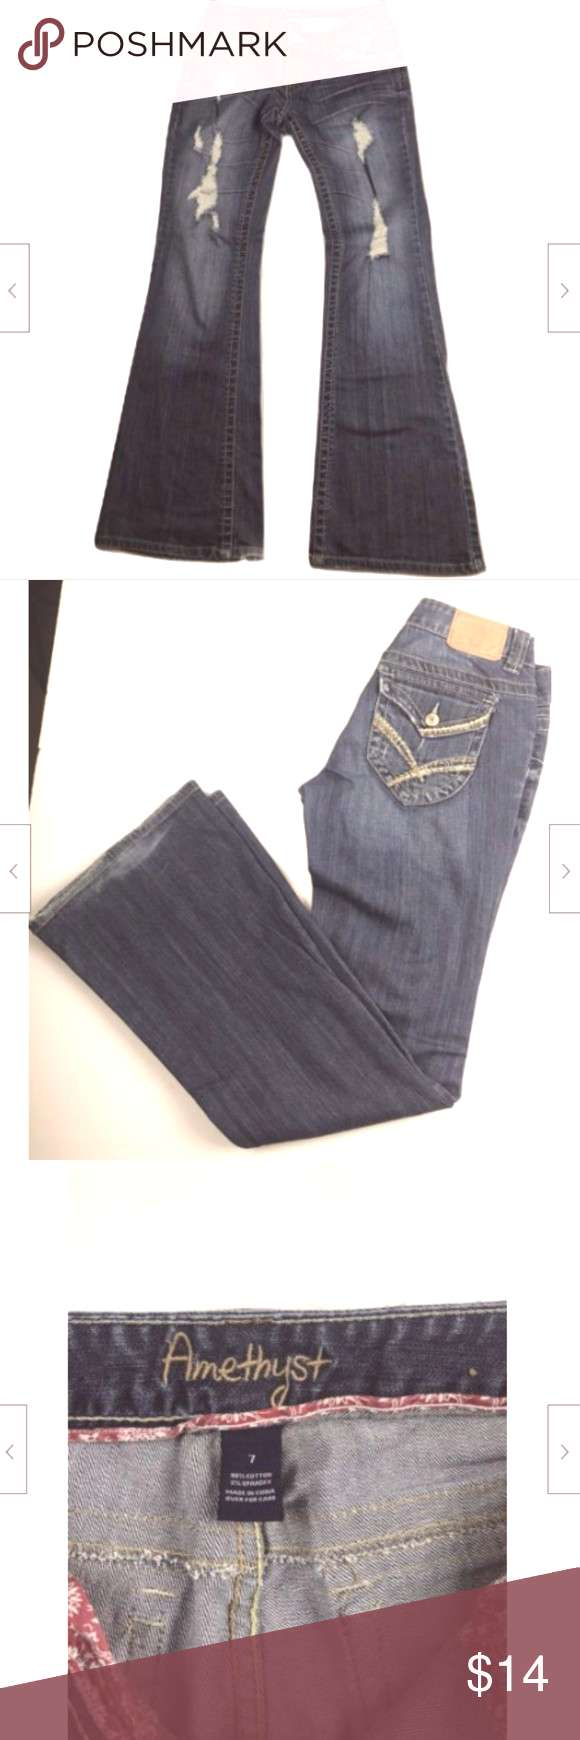 Amethyst Jeans Flare Bootcut Distressed distorted Amethyst Jeans Womens Size 7 Flare Bootcut Distr